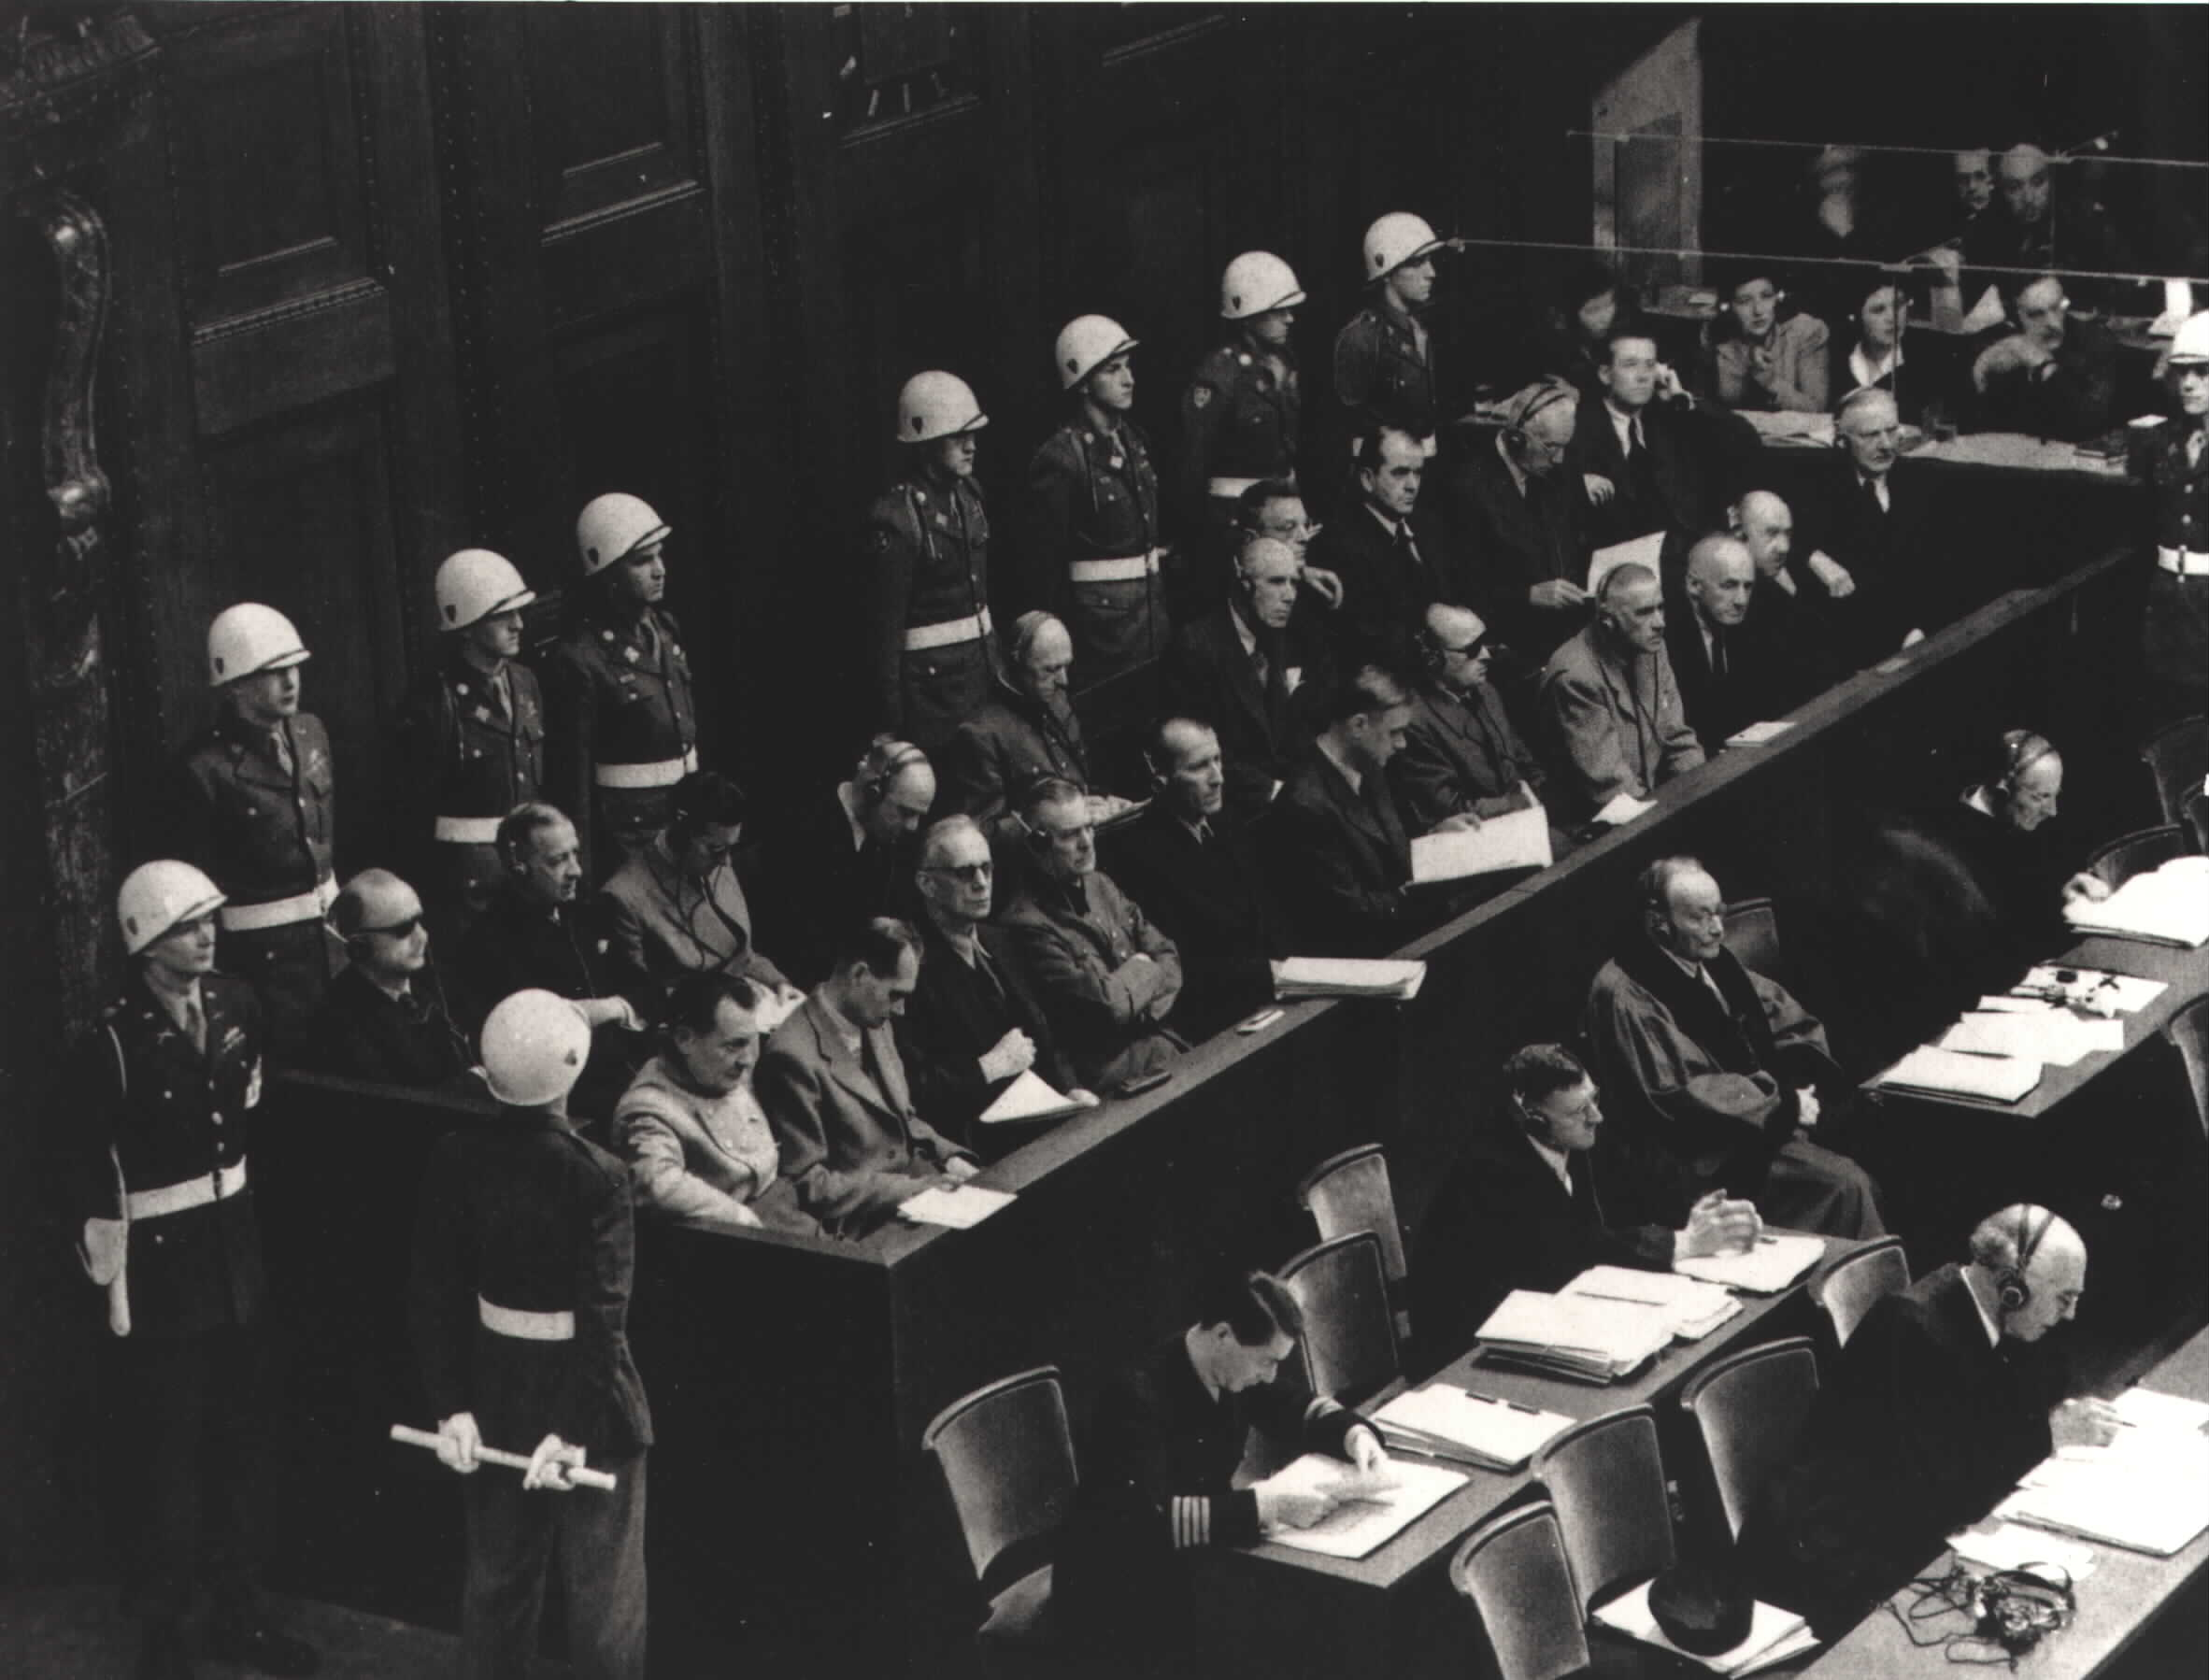 Black and white photographs showing people in a courtroom